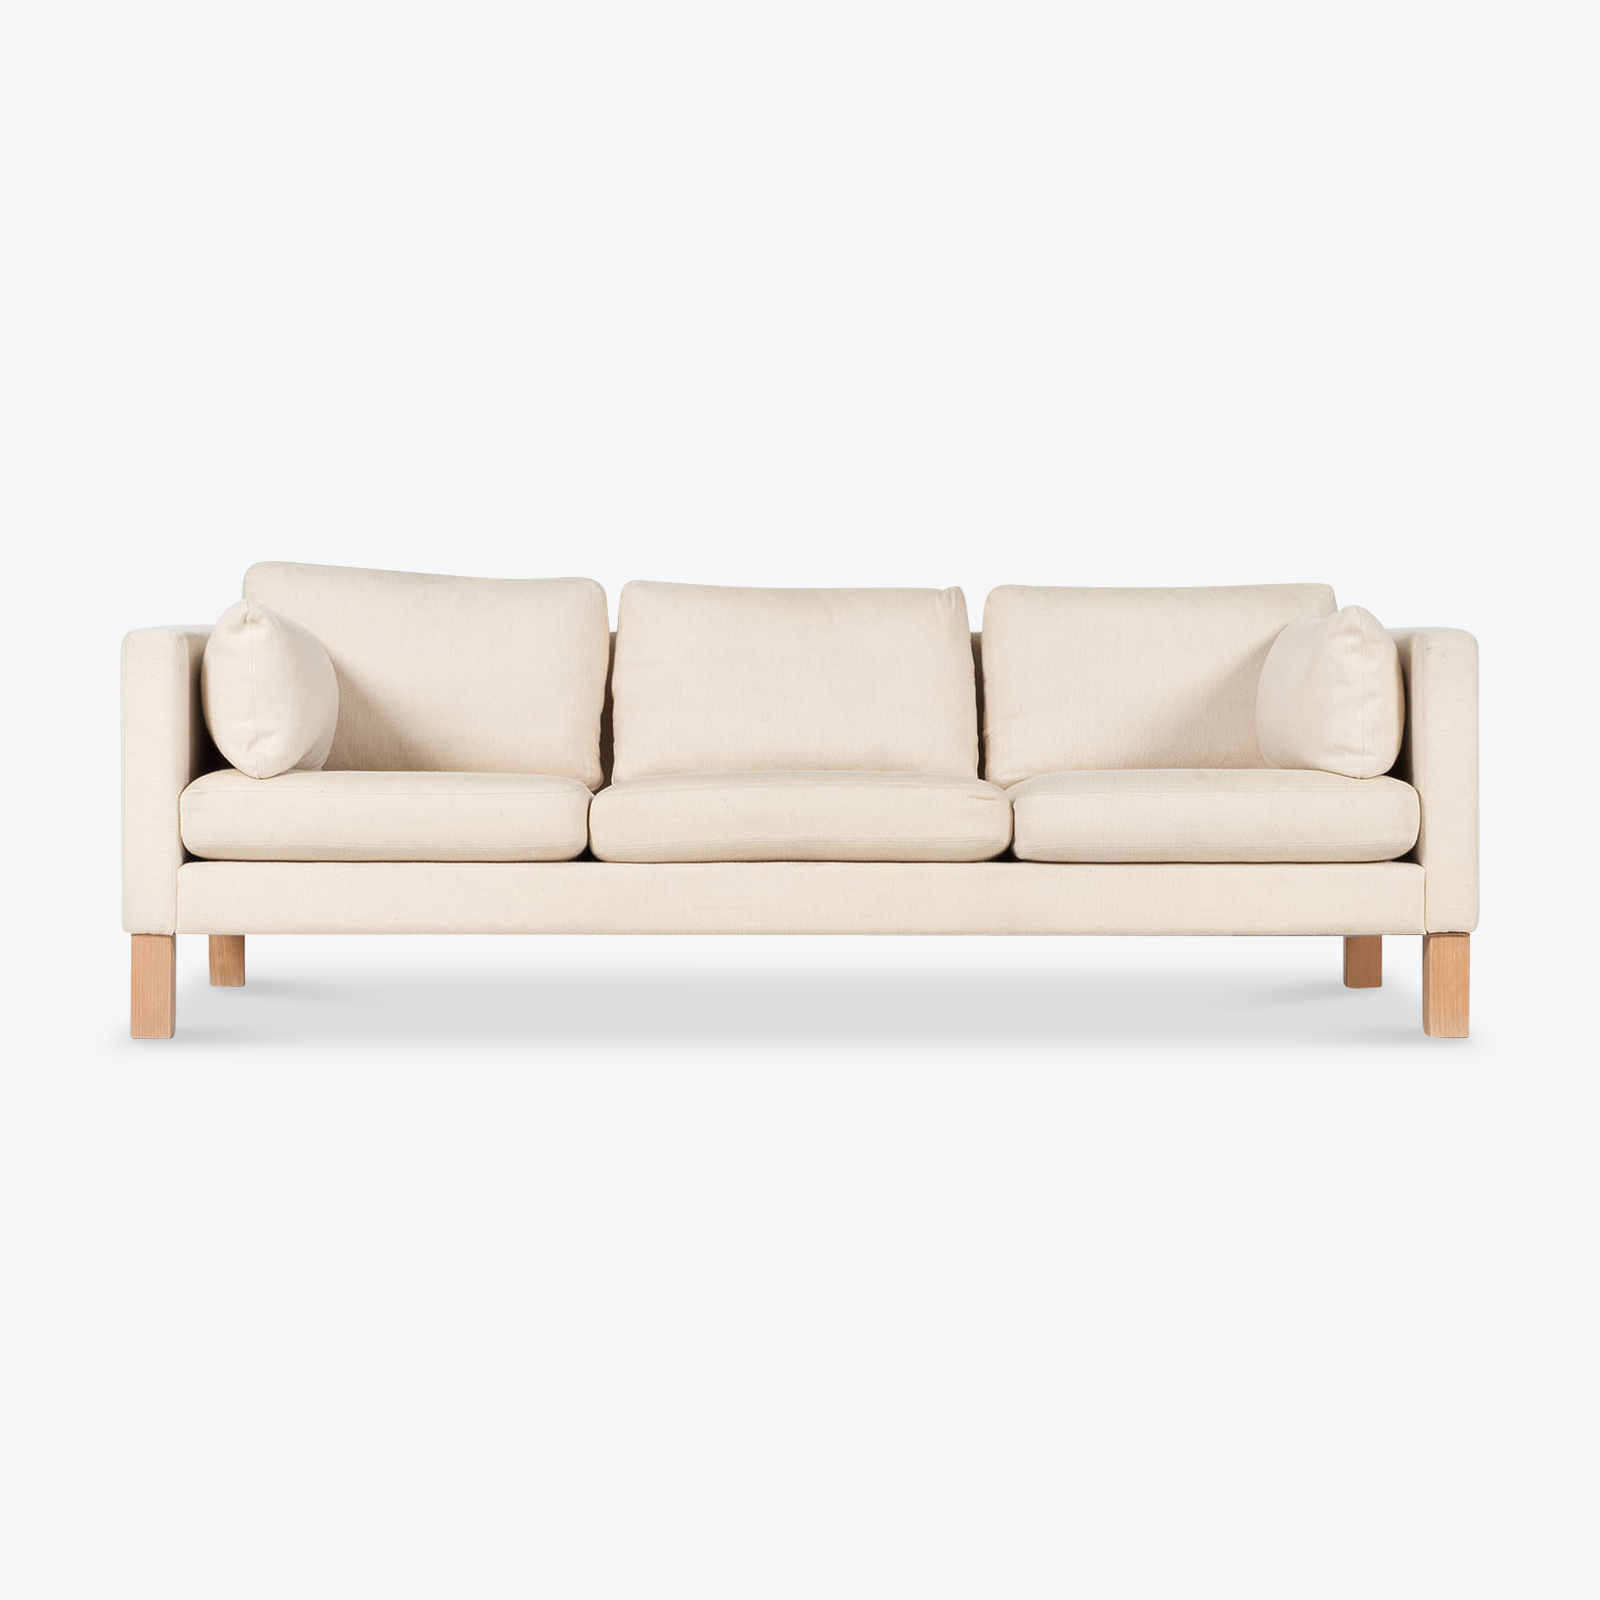 3 Seat Sofa By Soren Lund In Light Wool With Beech Legs